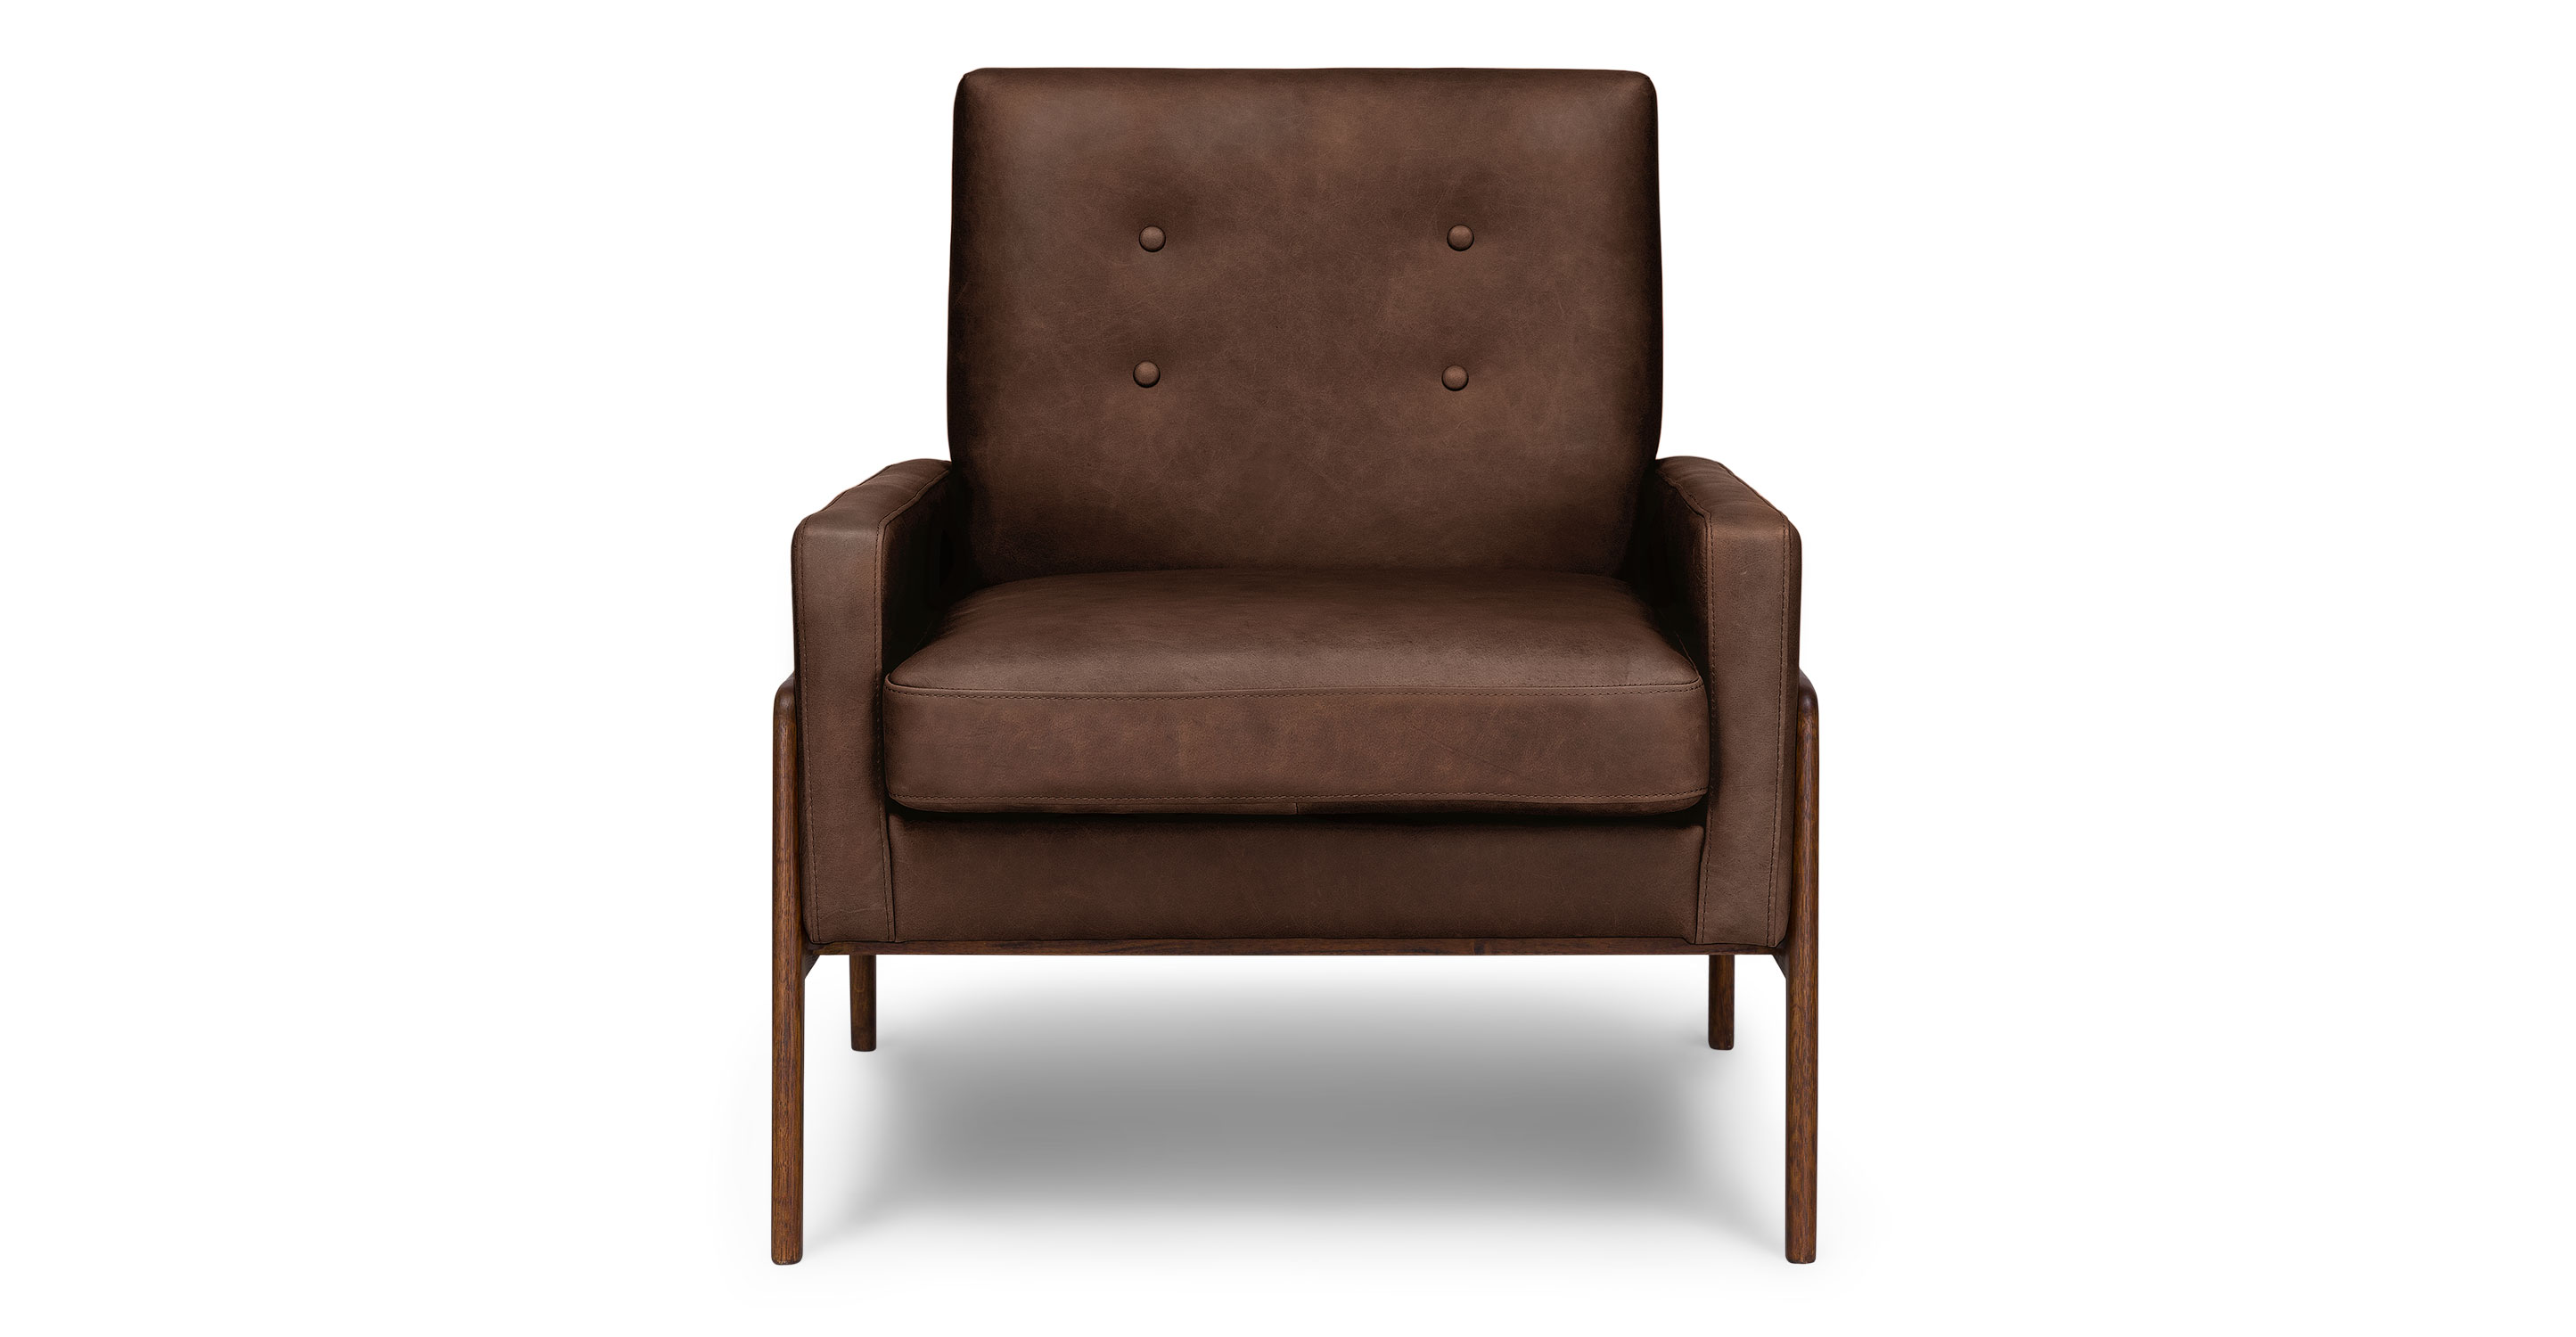 Nord Charme Chocolat Chair Lounge Chairs Article